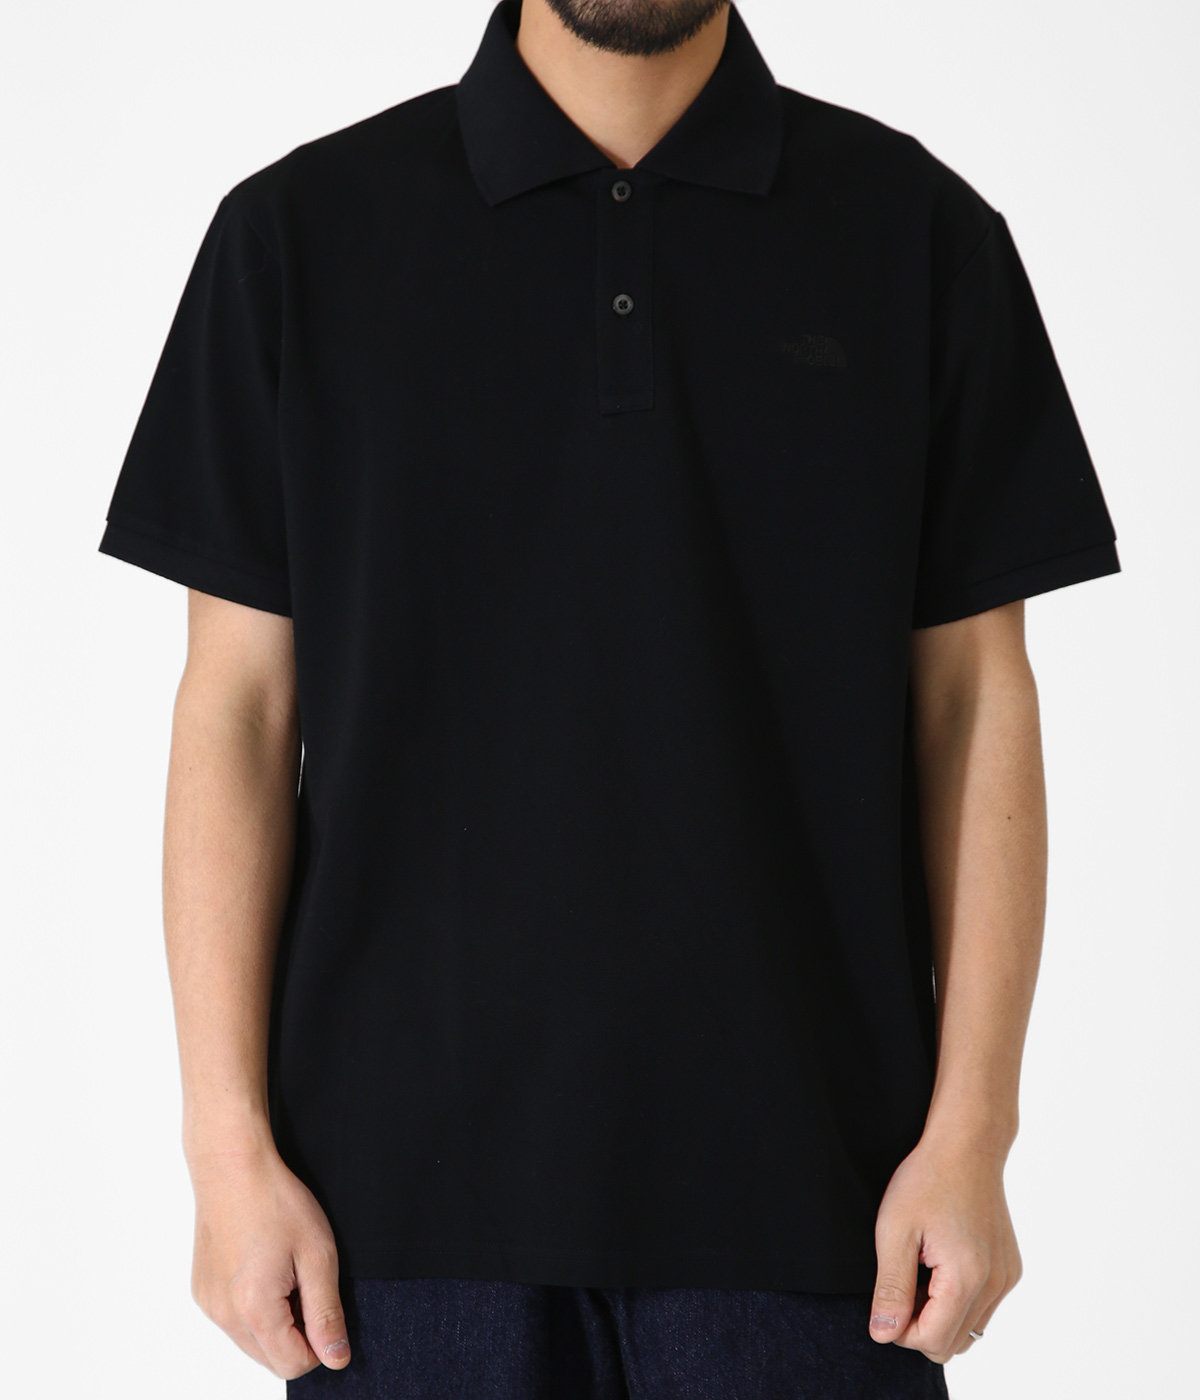 S/S Cool Business Polo